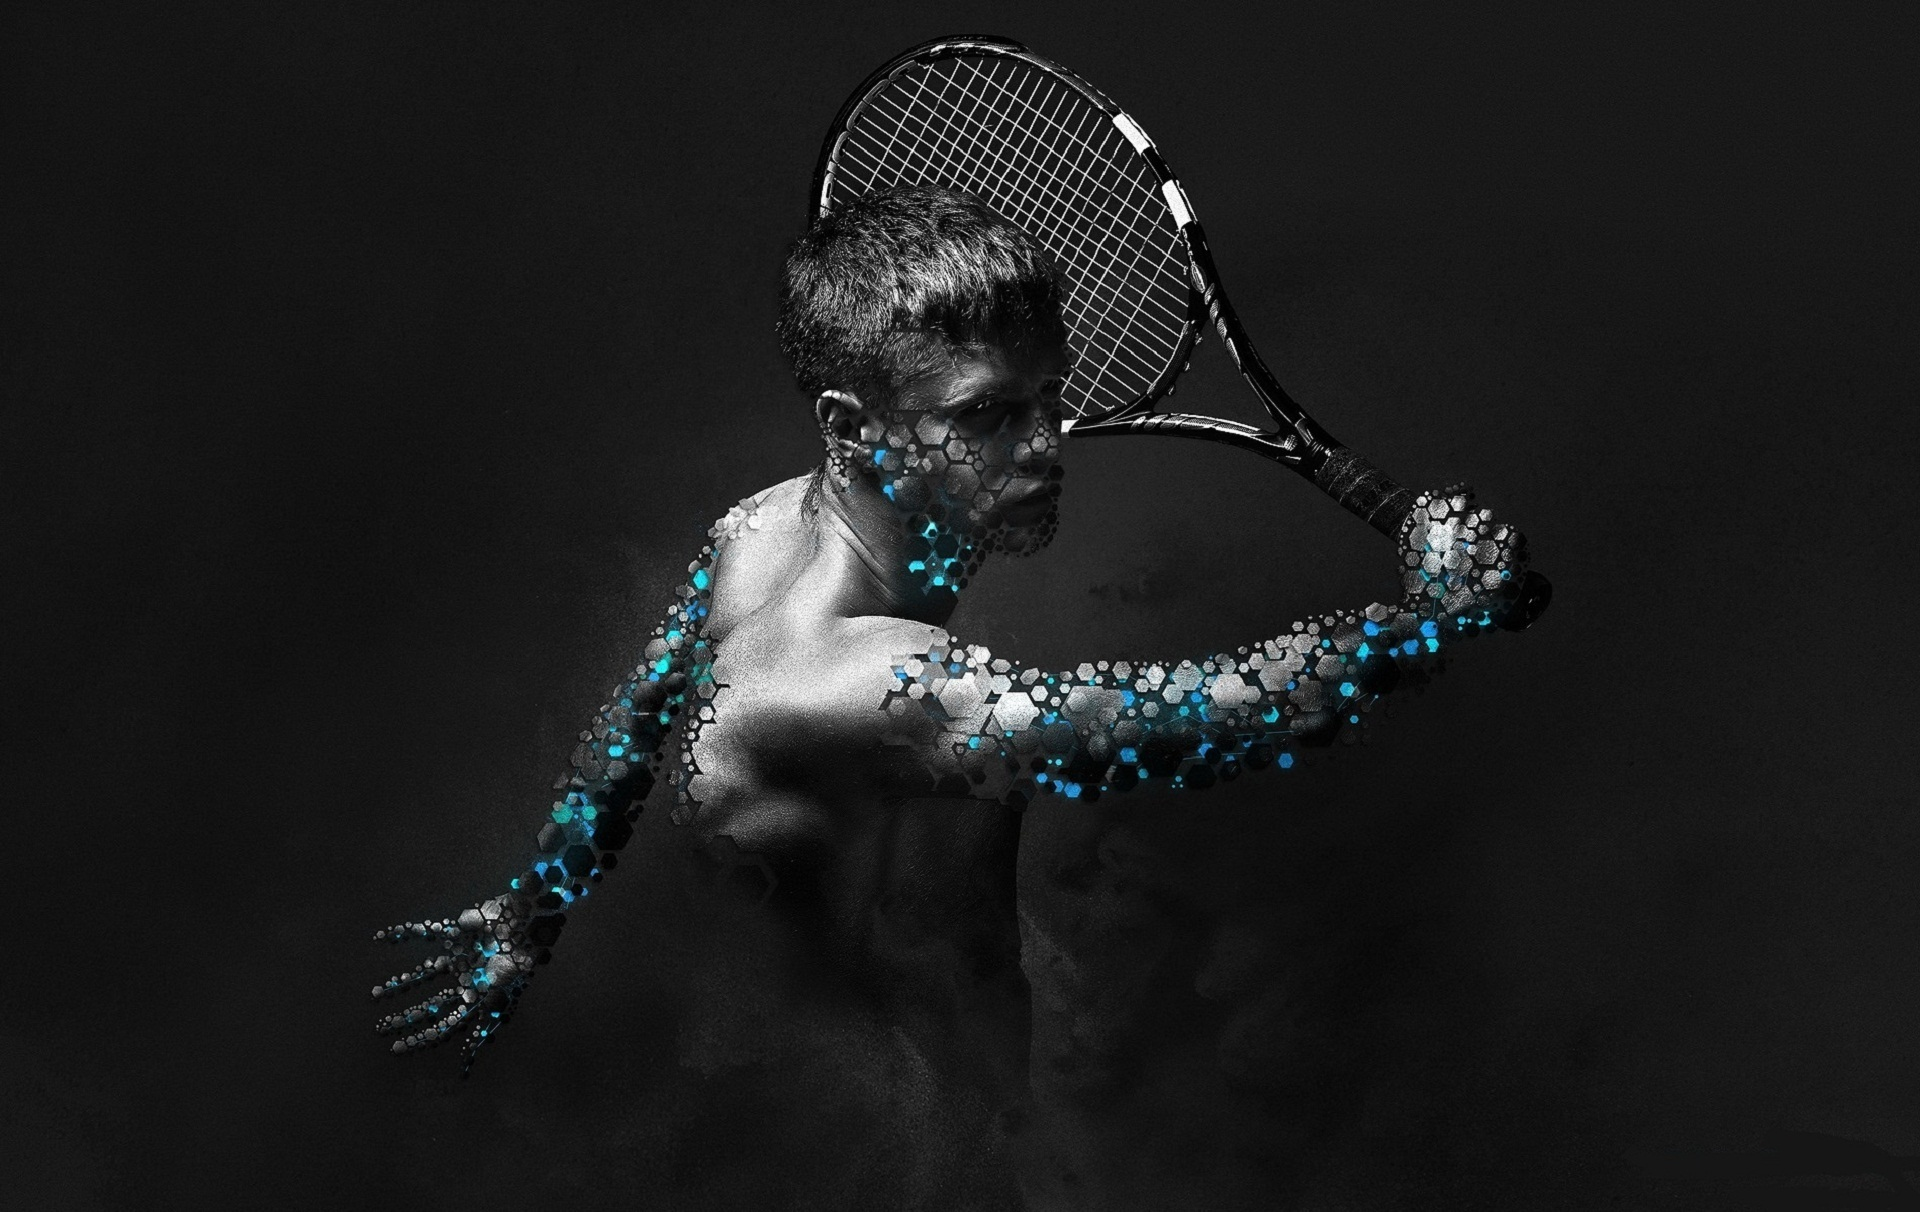 Sports - Artistic  - Manipulation - Photography - Fantasy Wallpaper